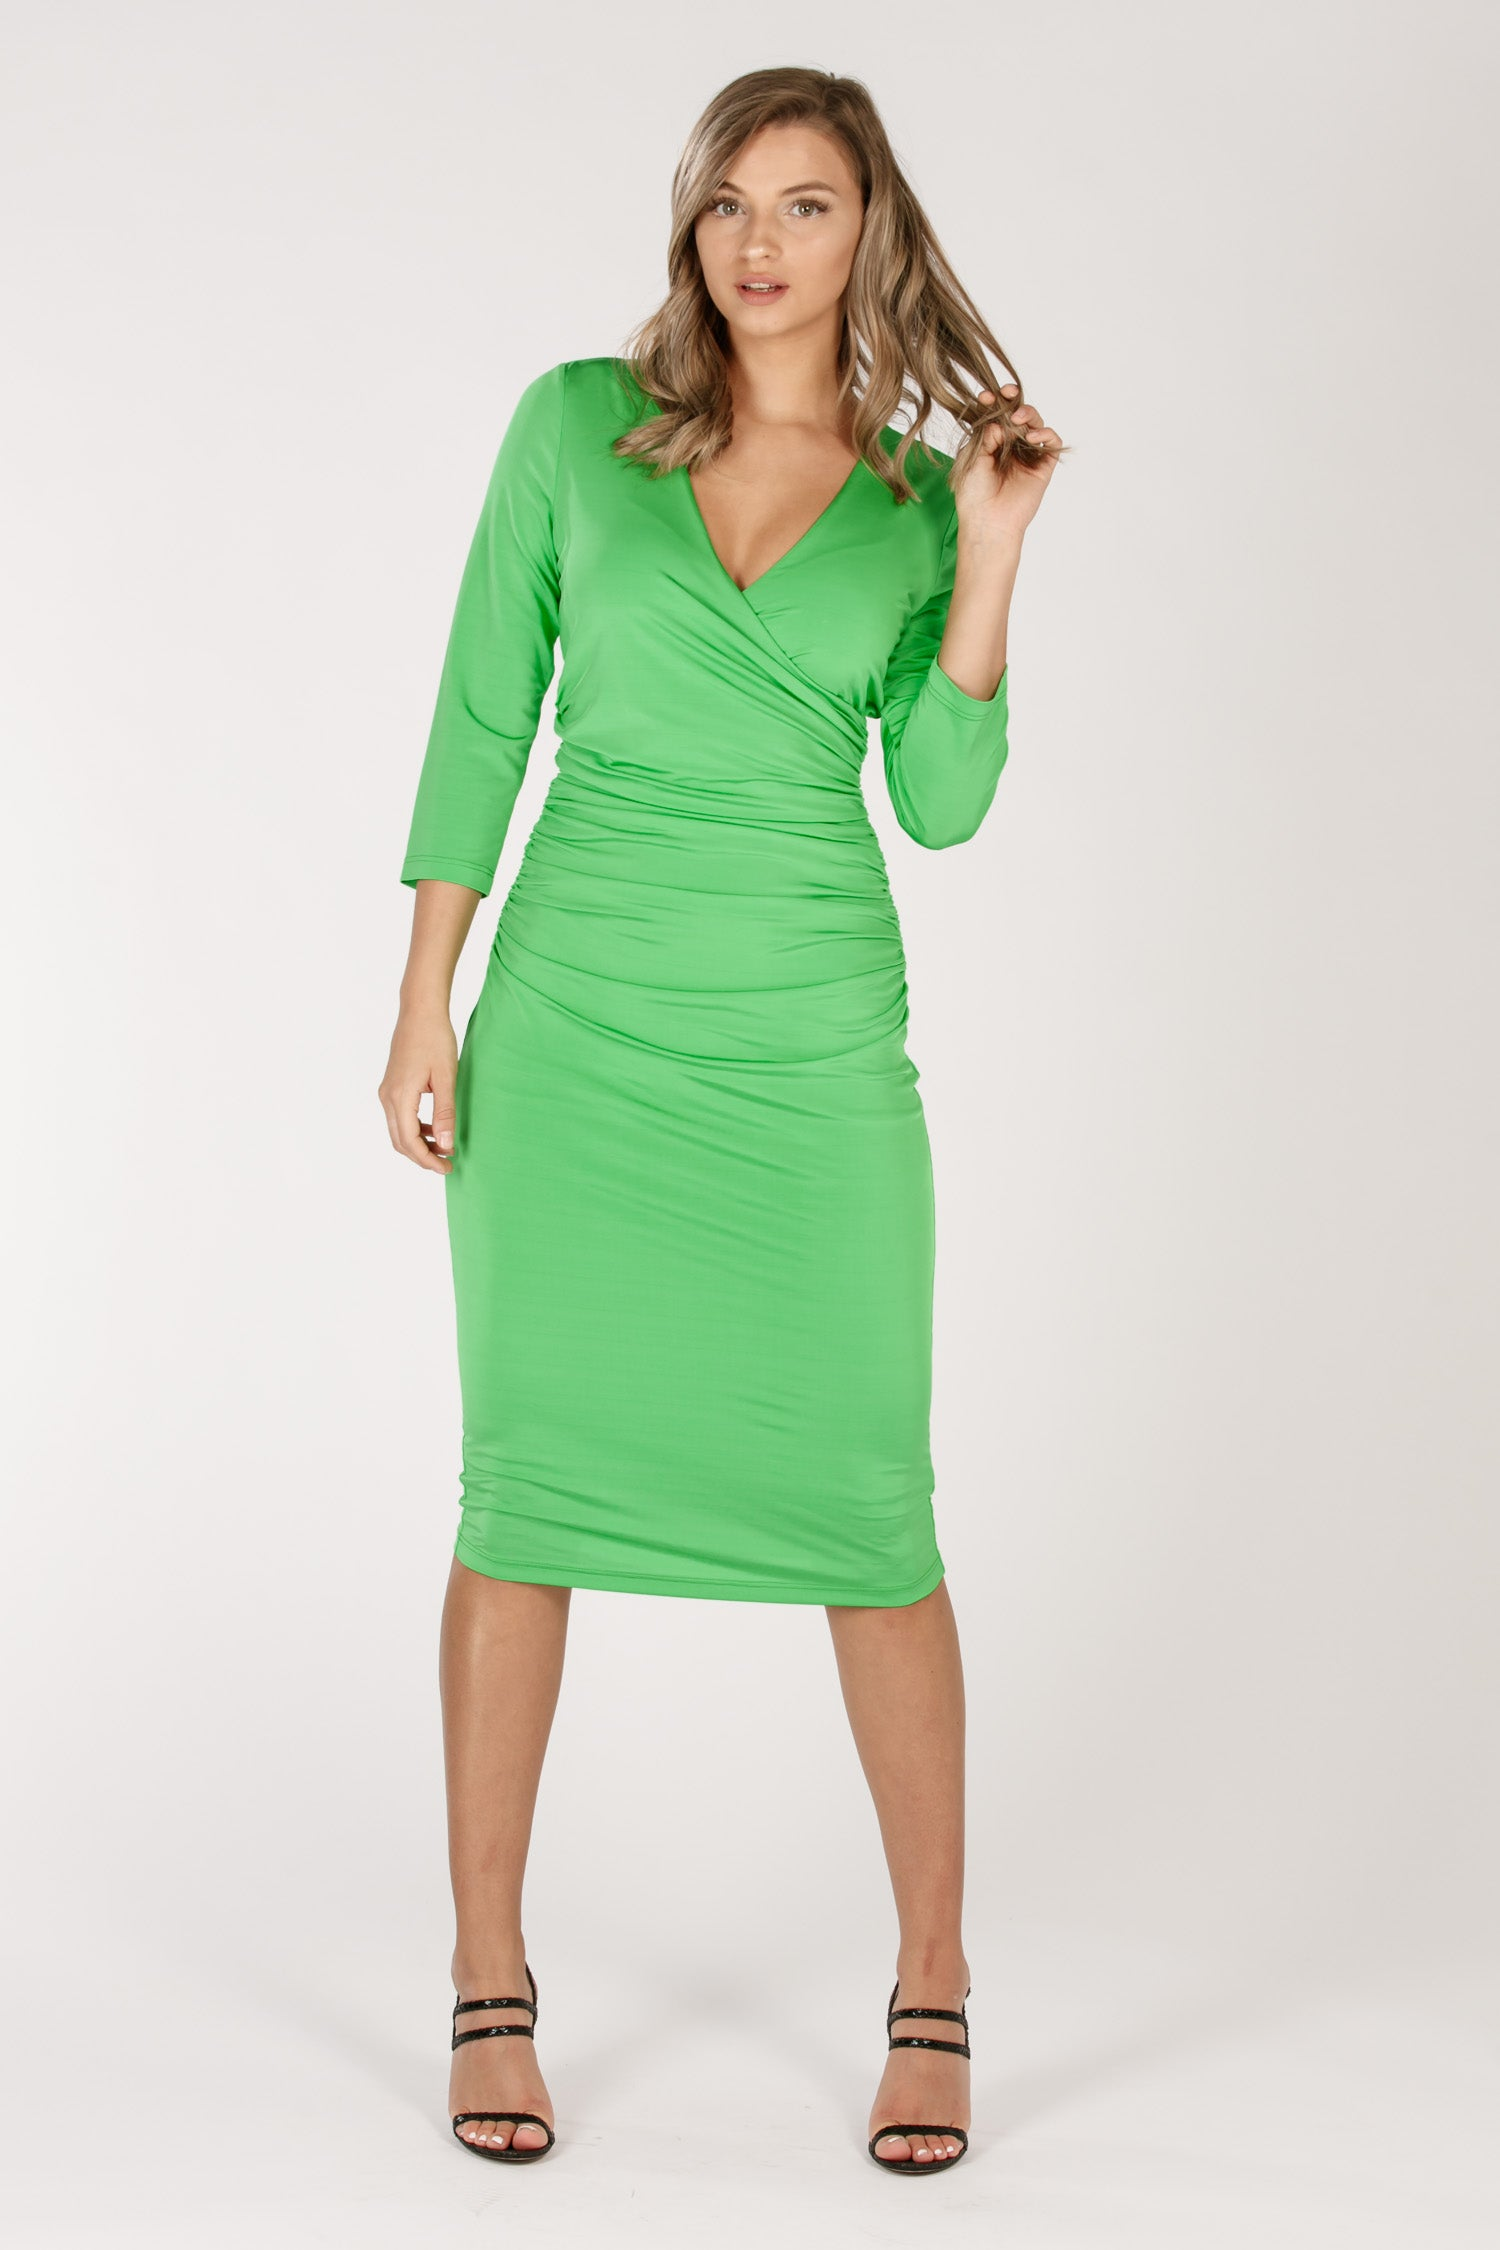 Madrid dress - Avocado